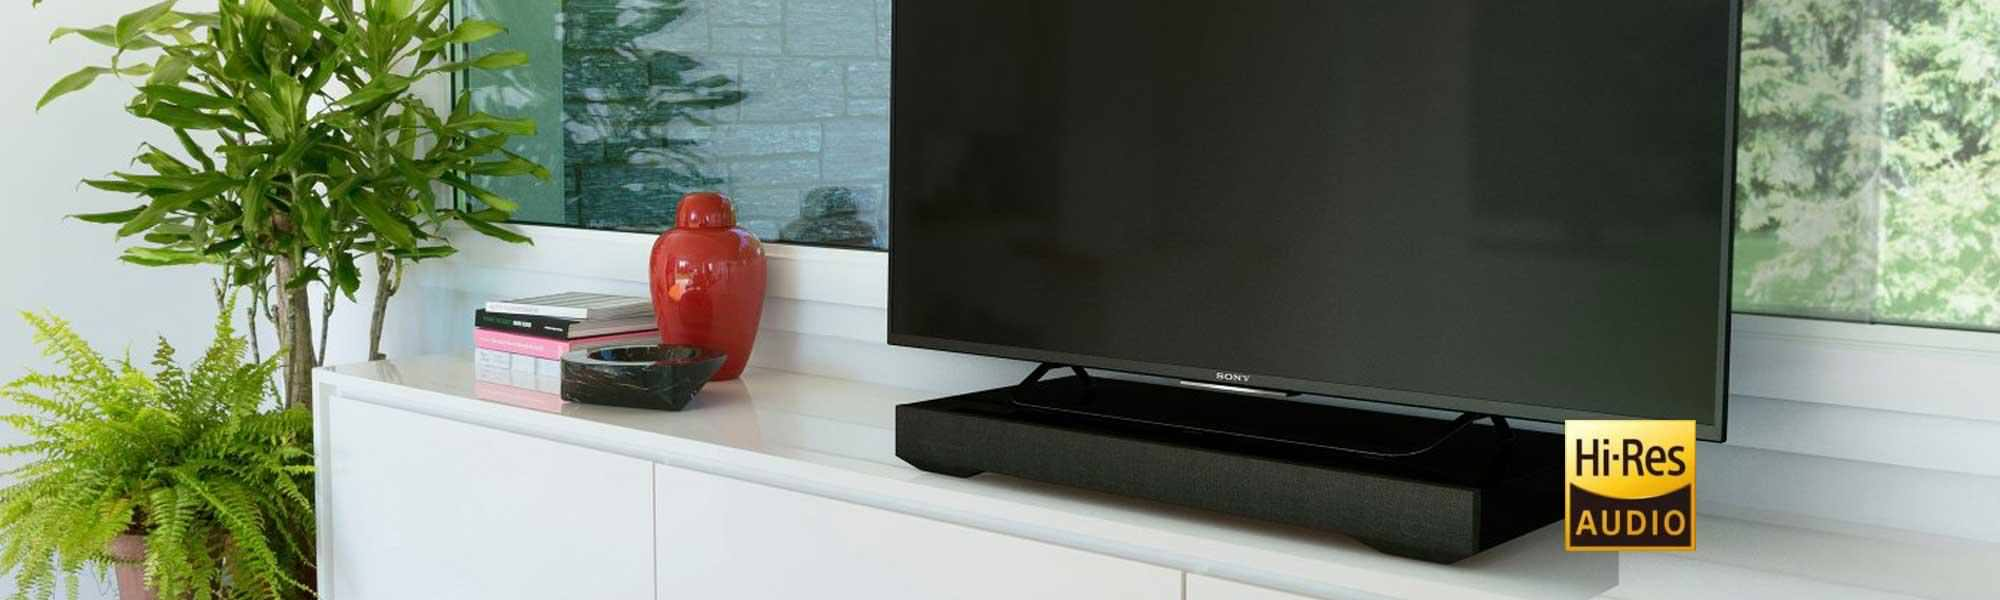 Sony HT-XT3 350W 2.1 Hi-Res Audio Soundbase